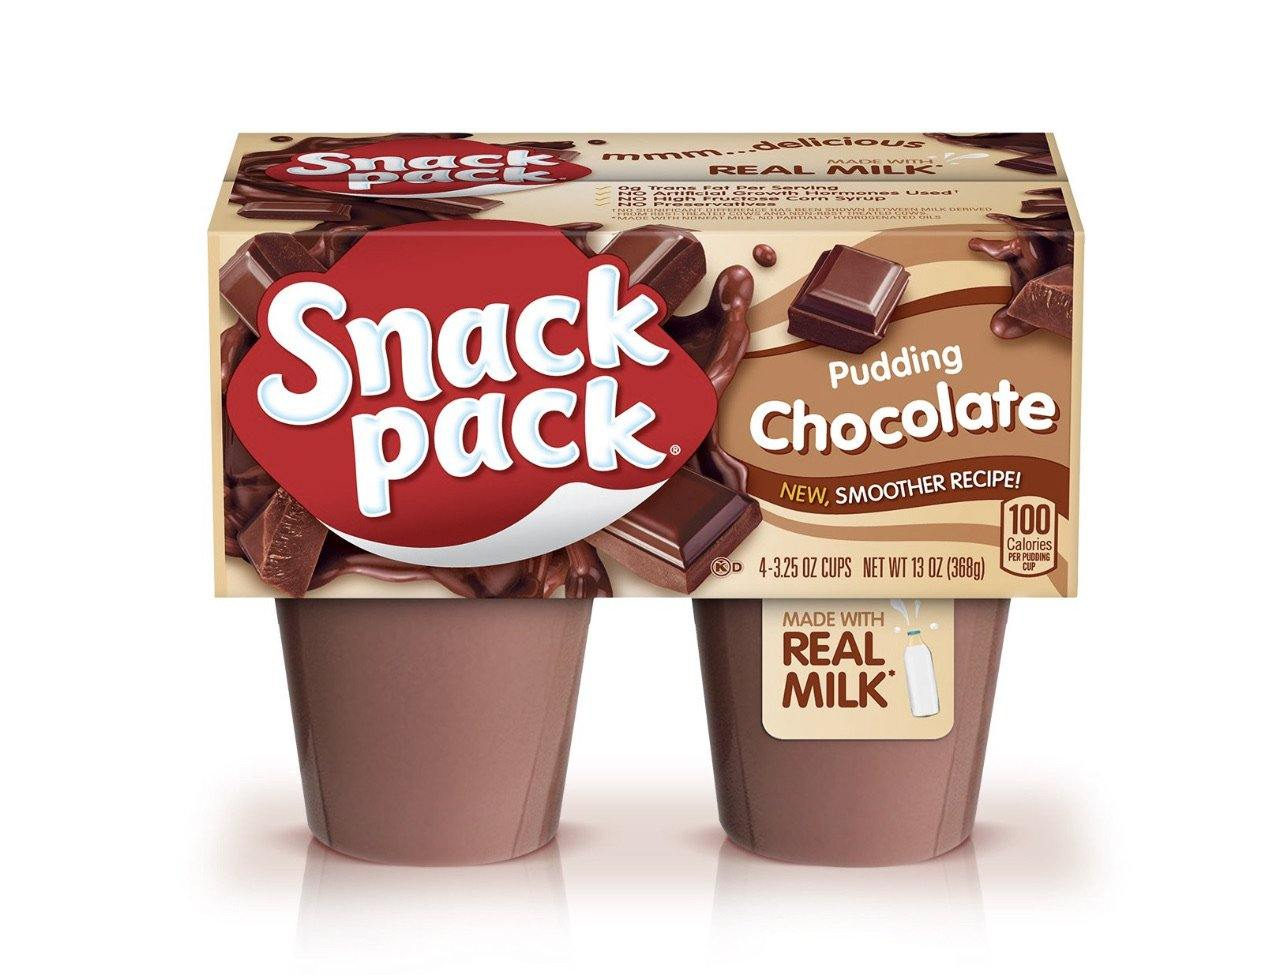 Snack Pack Pudding Cups, Made with Real Milk, 3.25 oz, 4 Pack - Munchiezz LLC